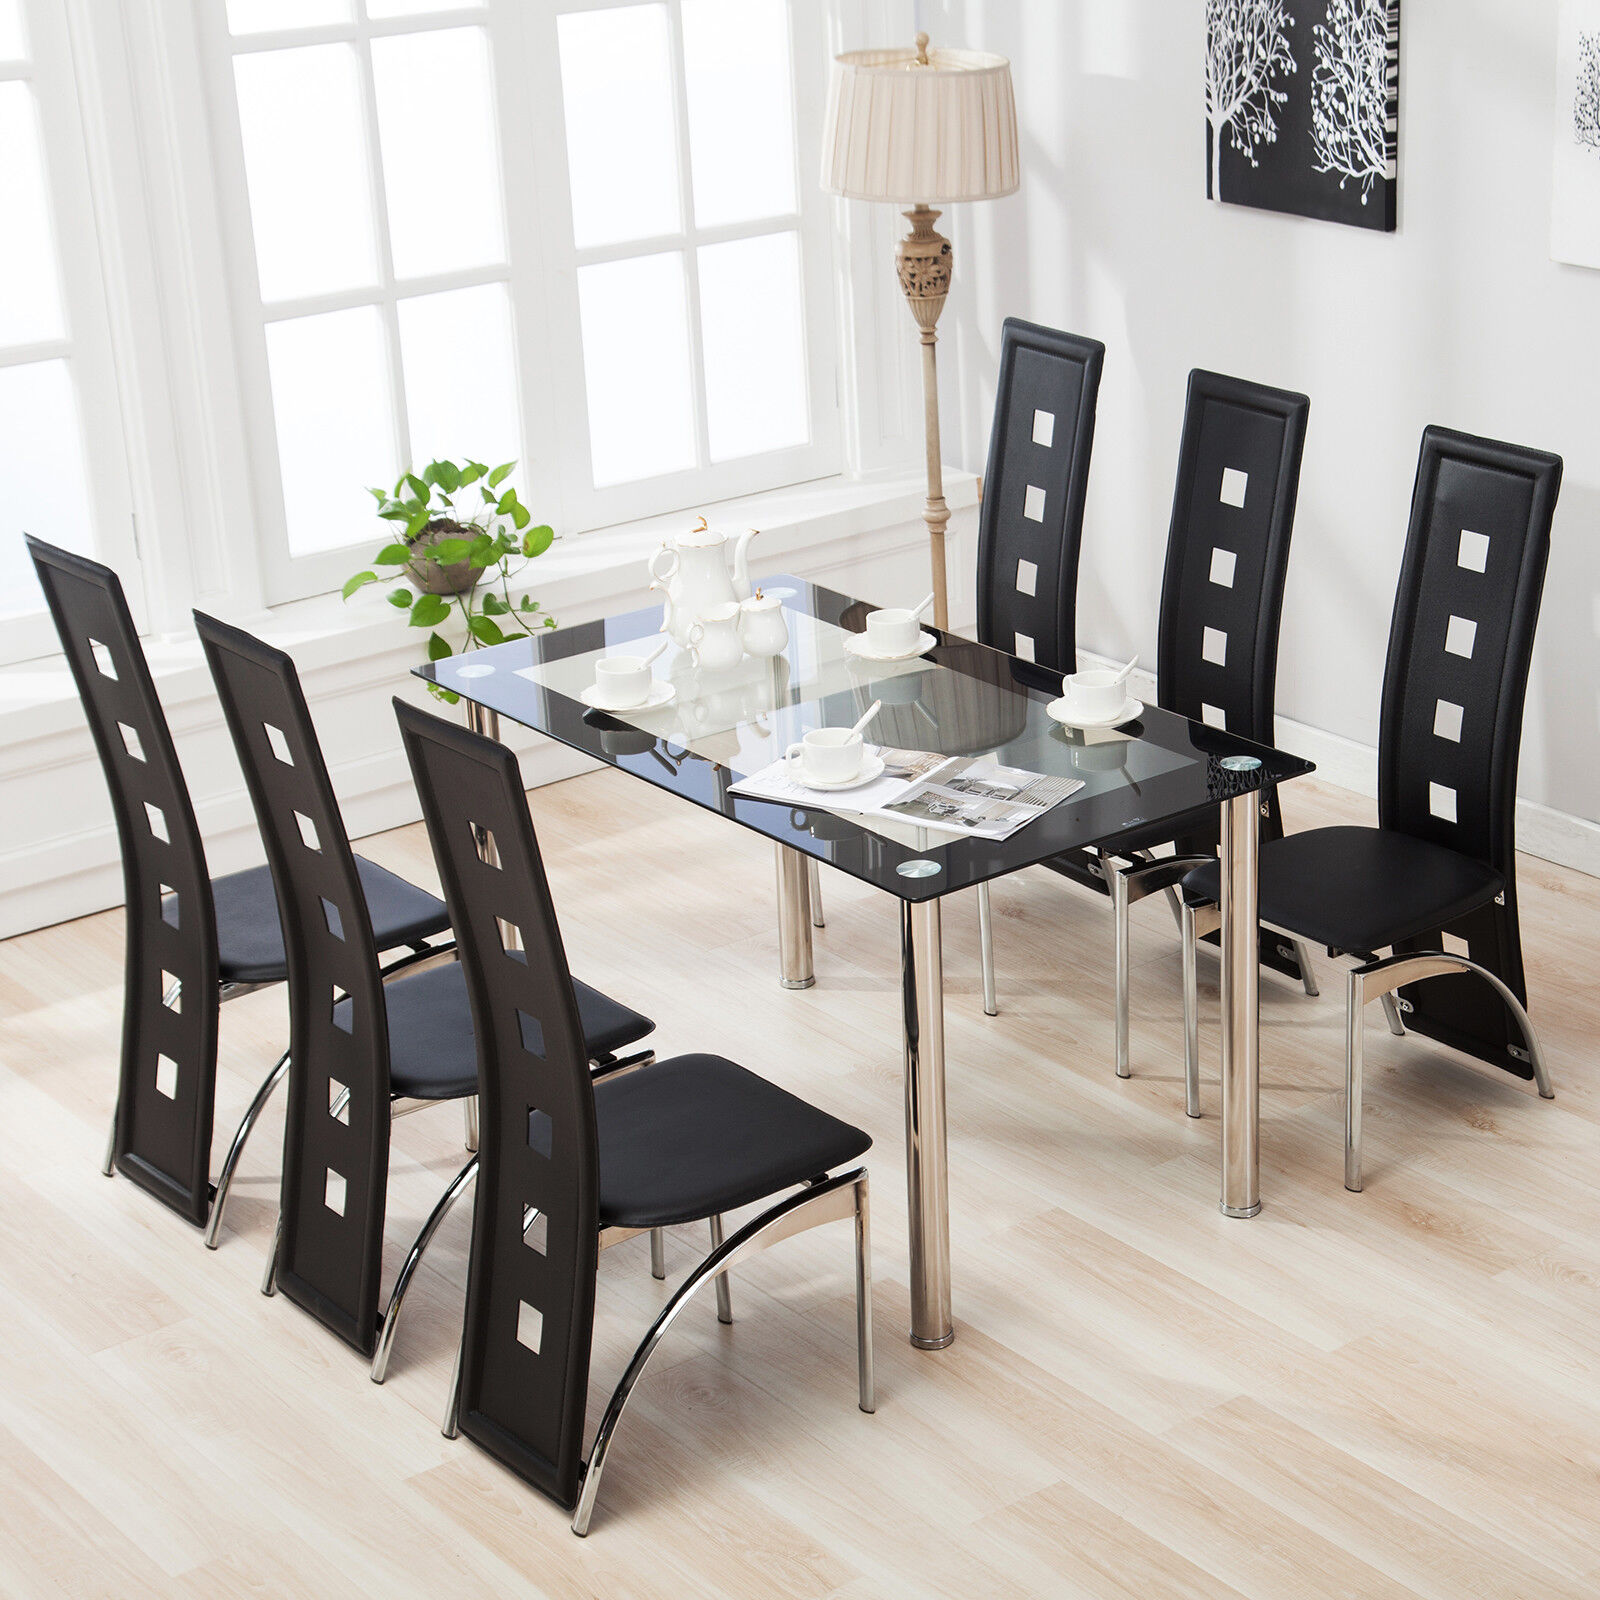 Breakfast Chairs Details About 7 Piece Dining Table Set With 6 Chairs Glass Metal Kitchen Breakfast Furniture